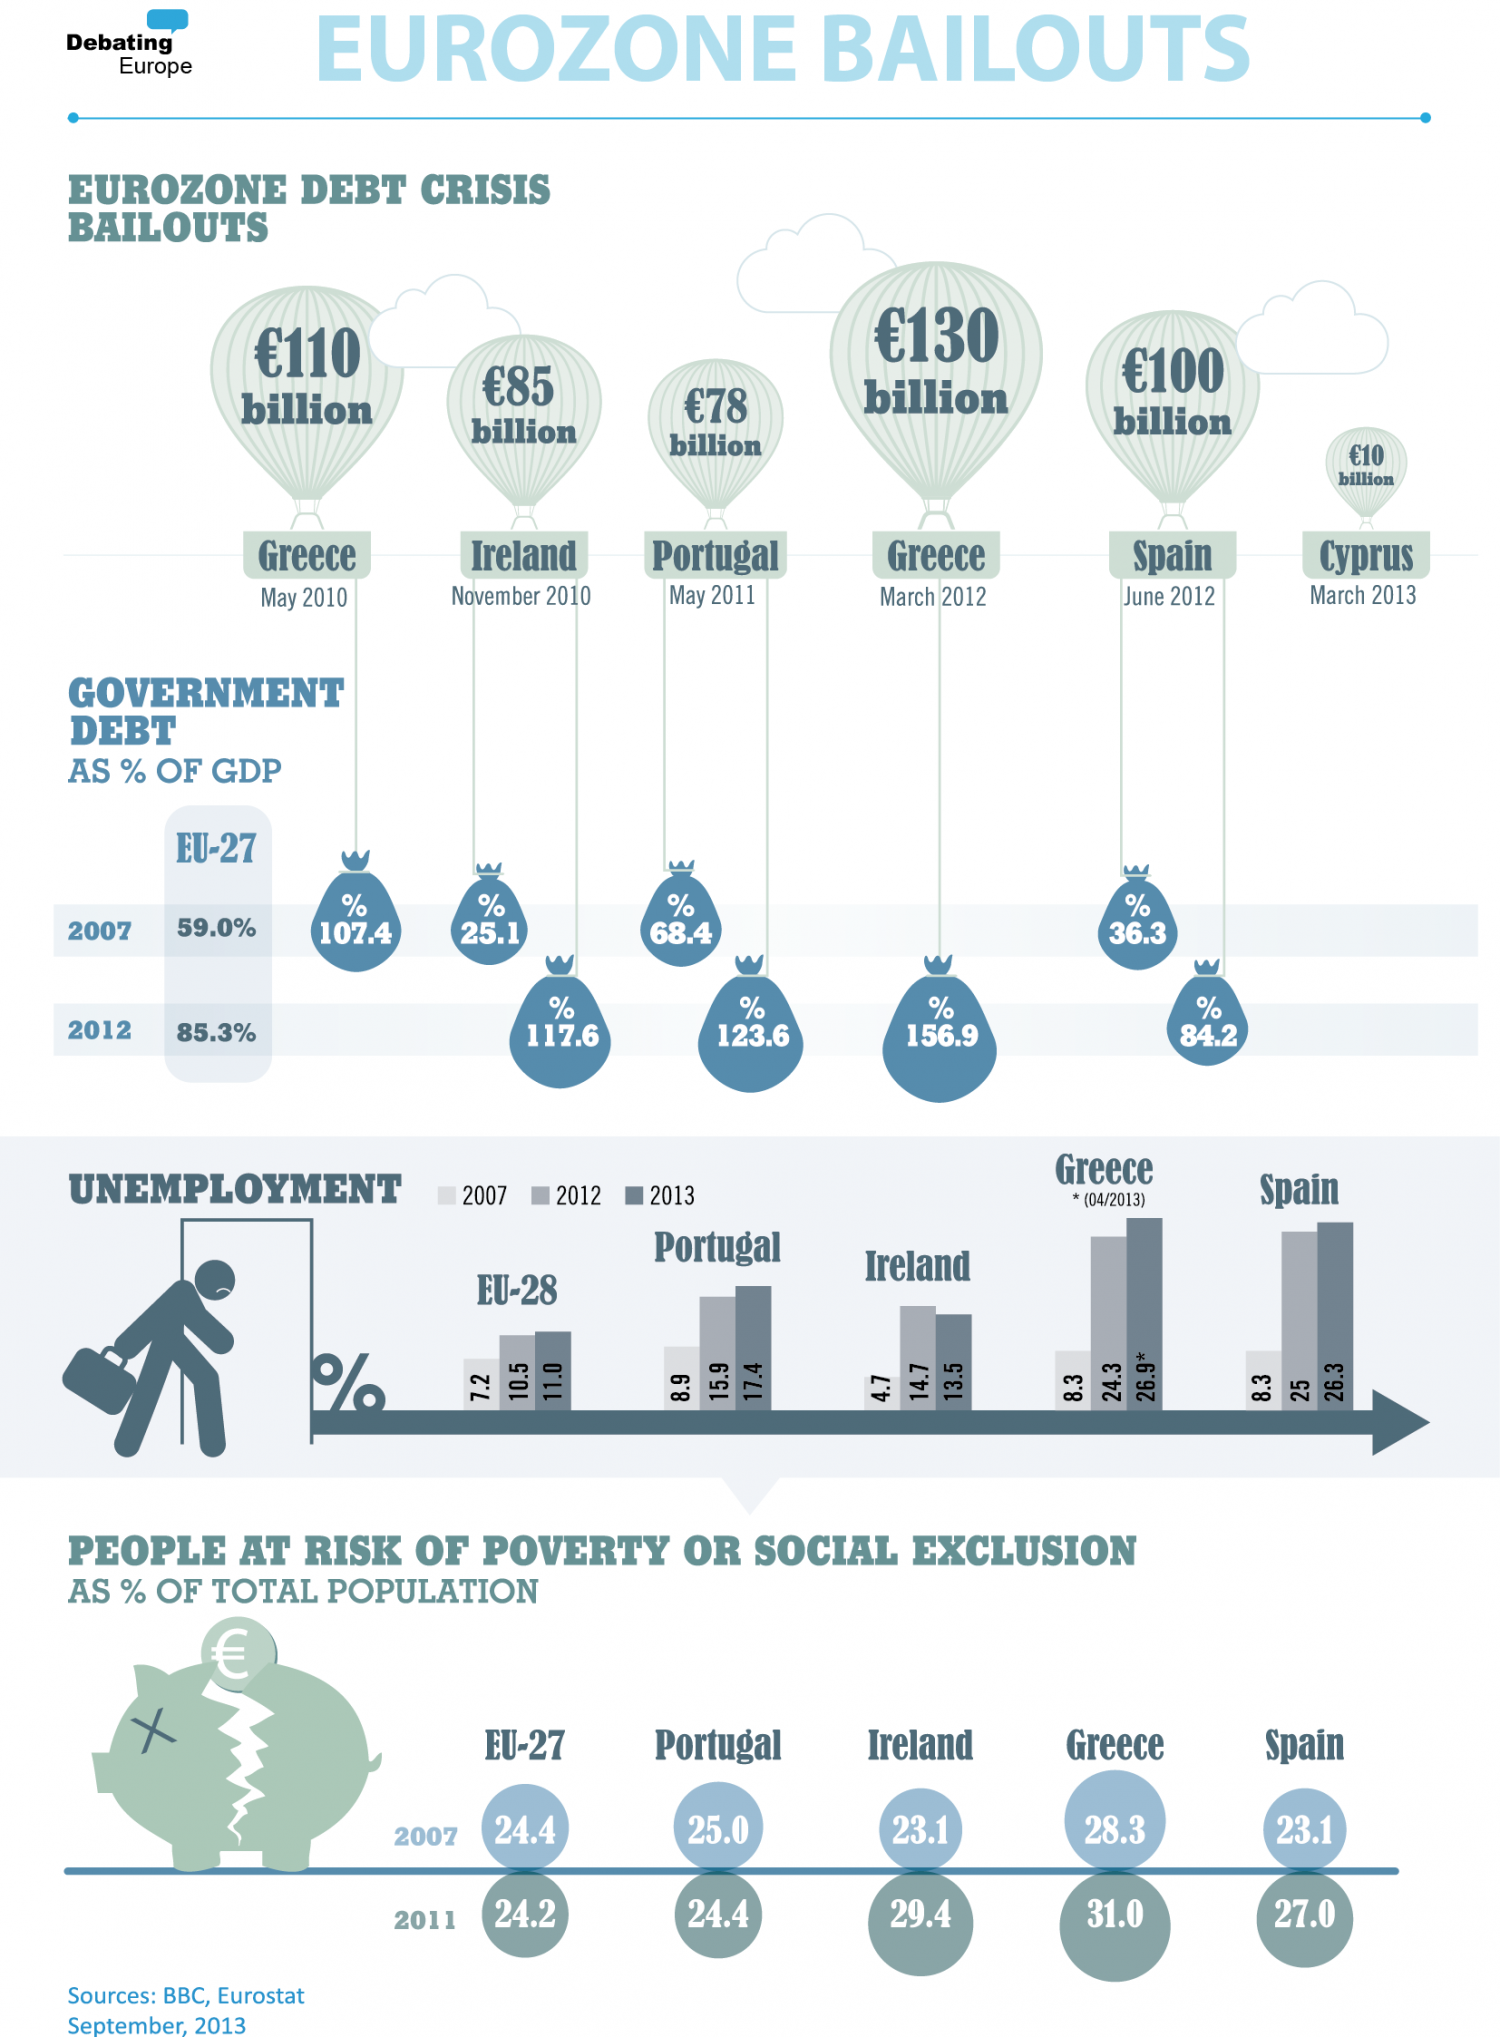 Eurozone Bailouts Infographic